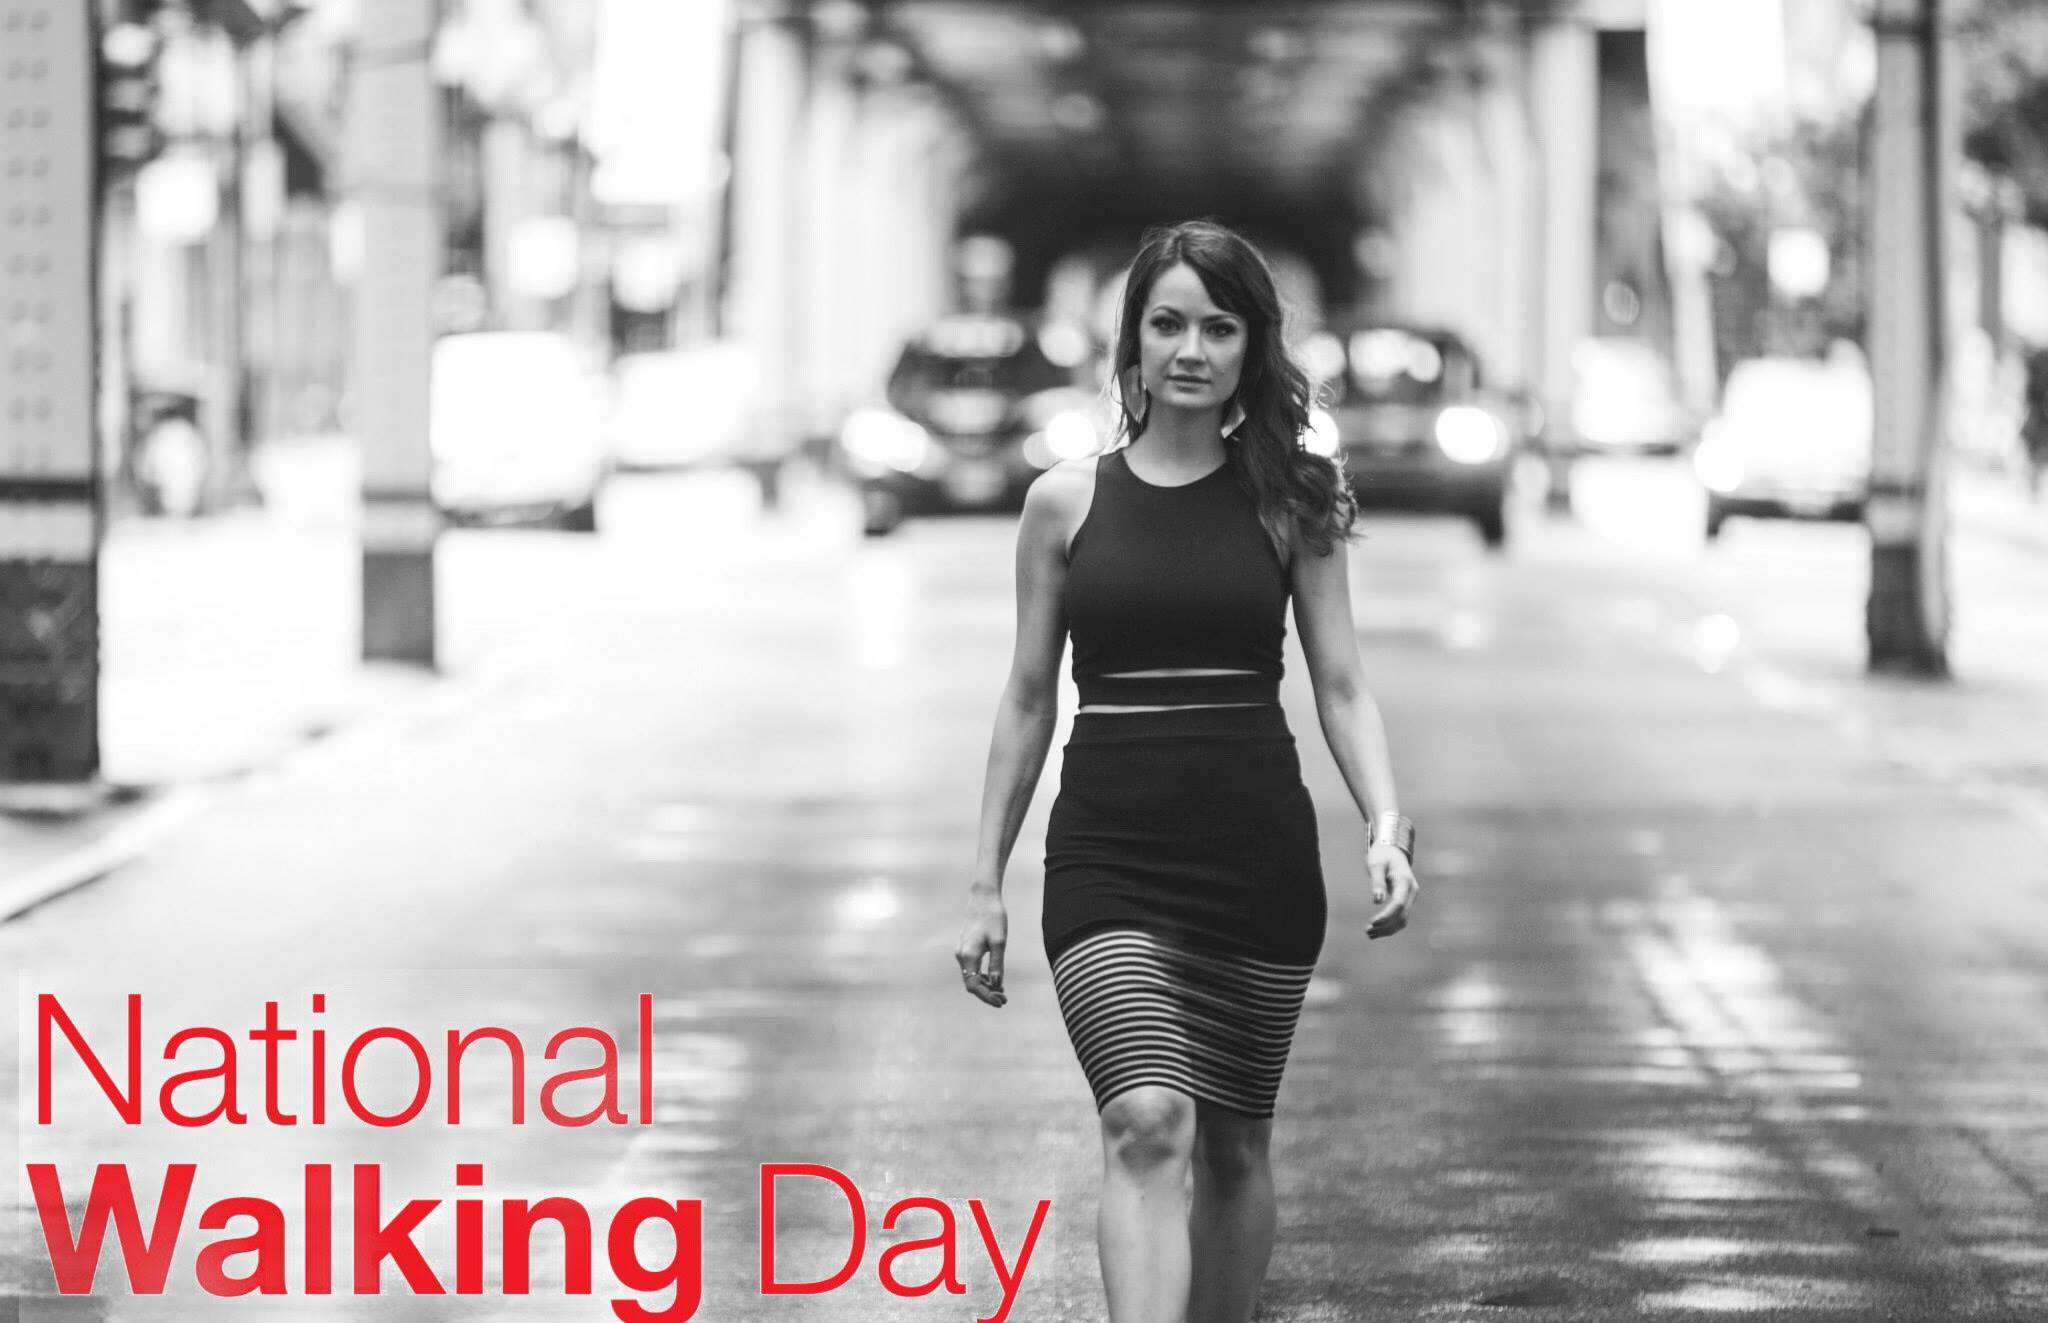 National Walking Day Wishes for Whatsapp